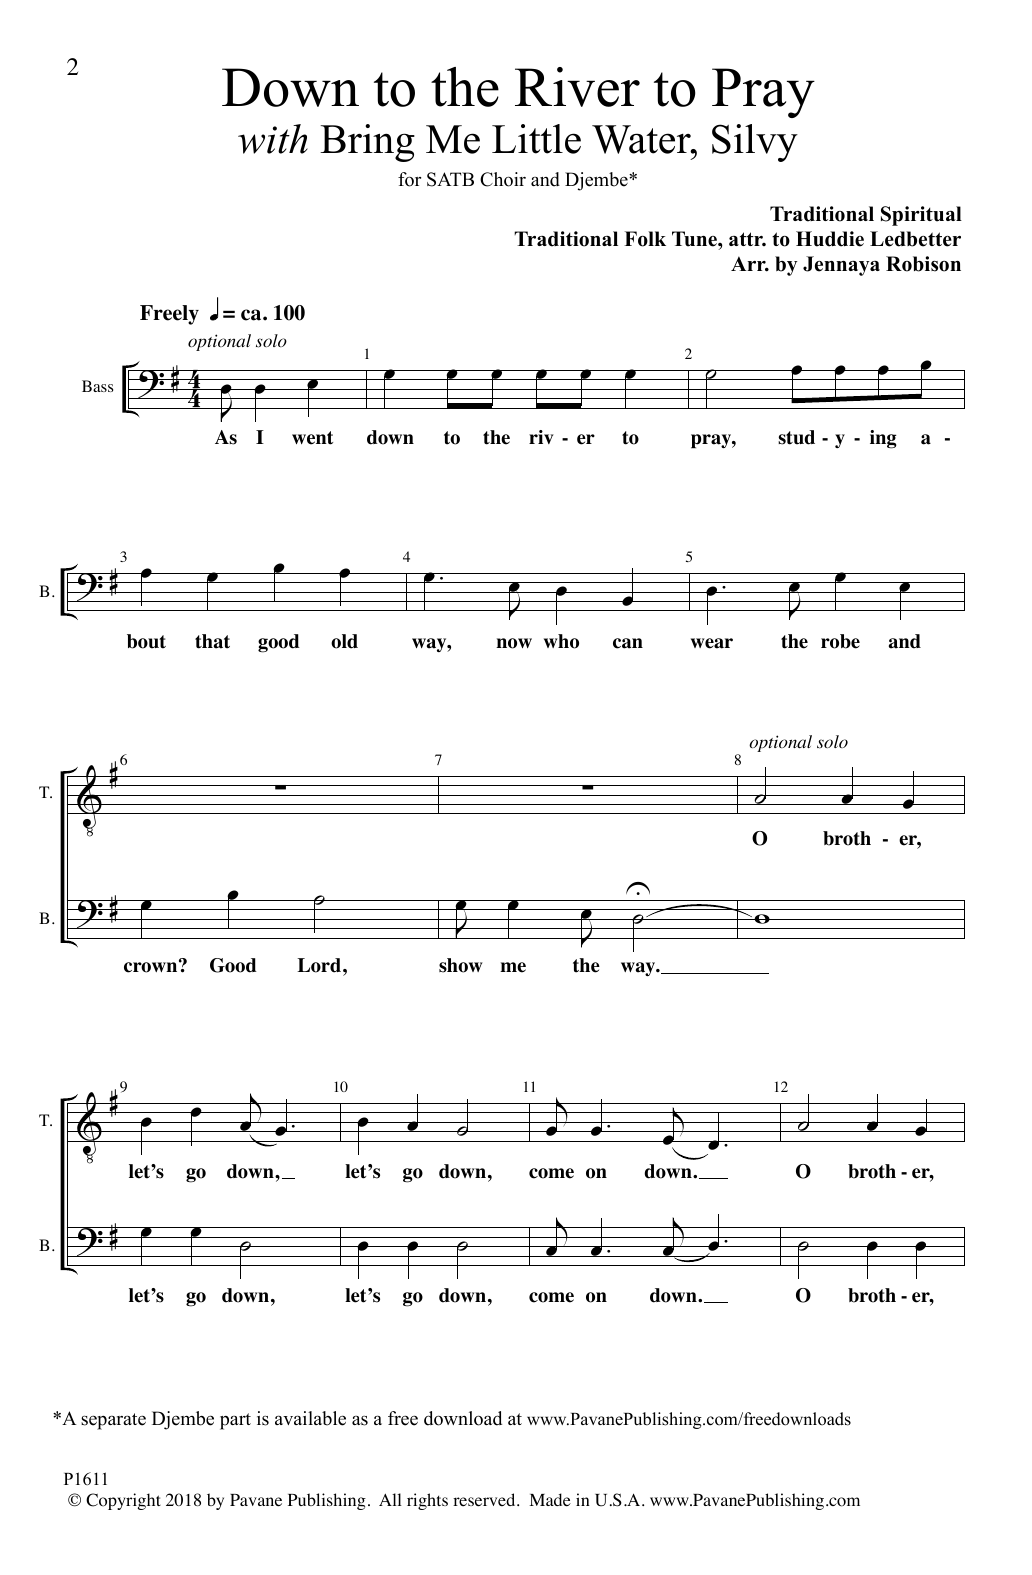 Down To The River To Pray (with Bring Me Little Water, Silvy) (arr. Jennaya Robison) Sheet Music